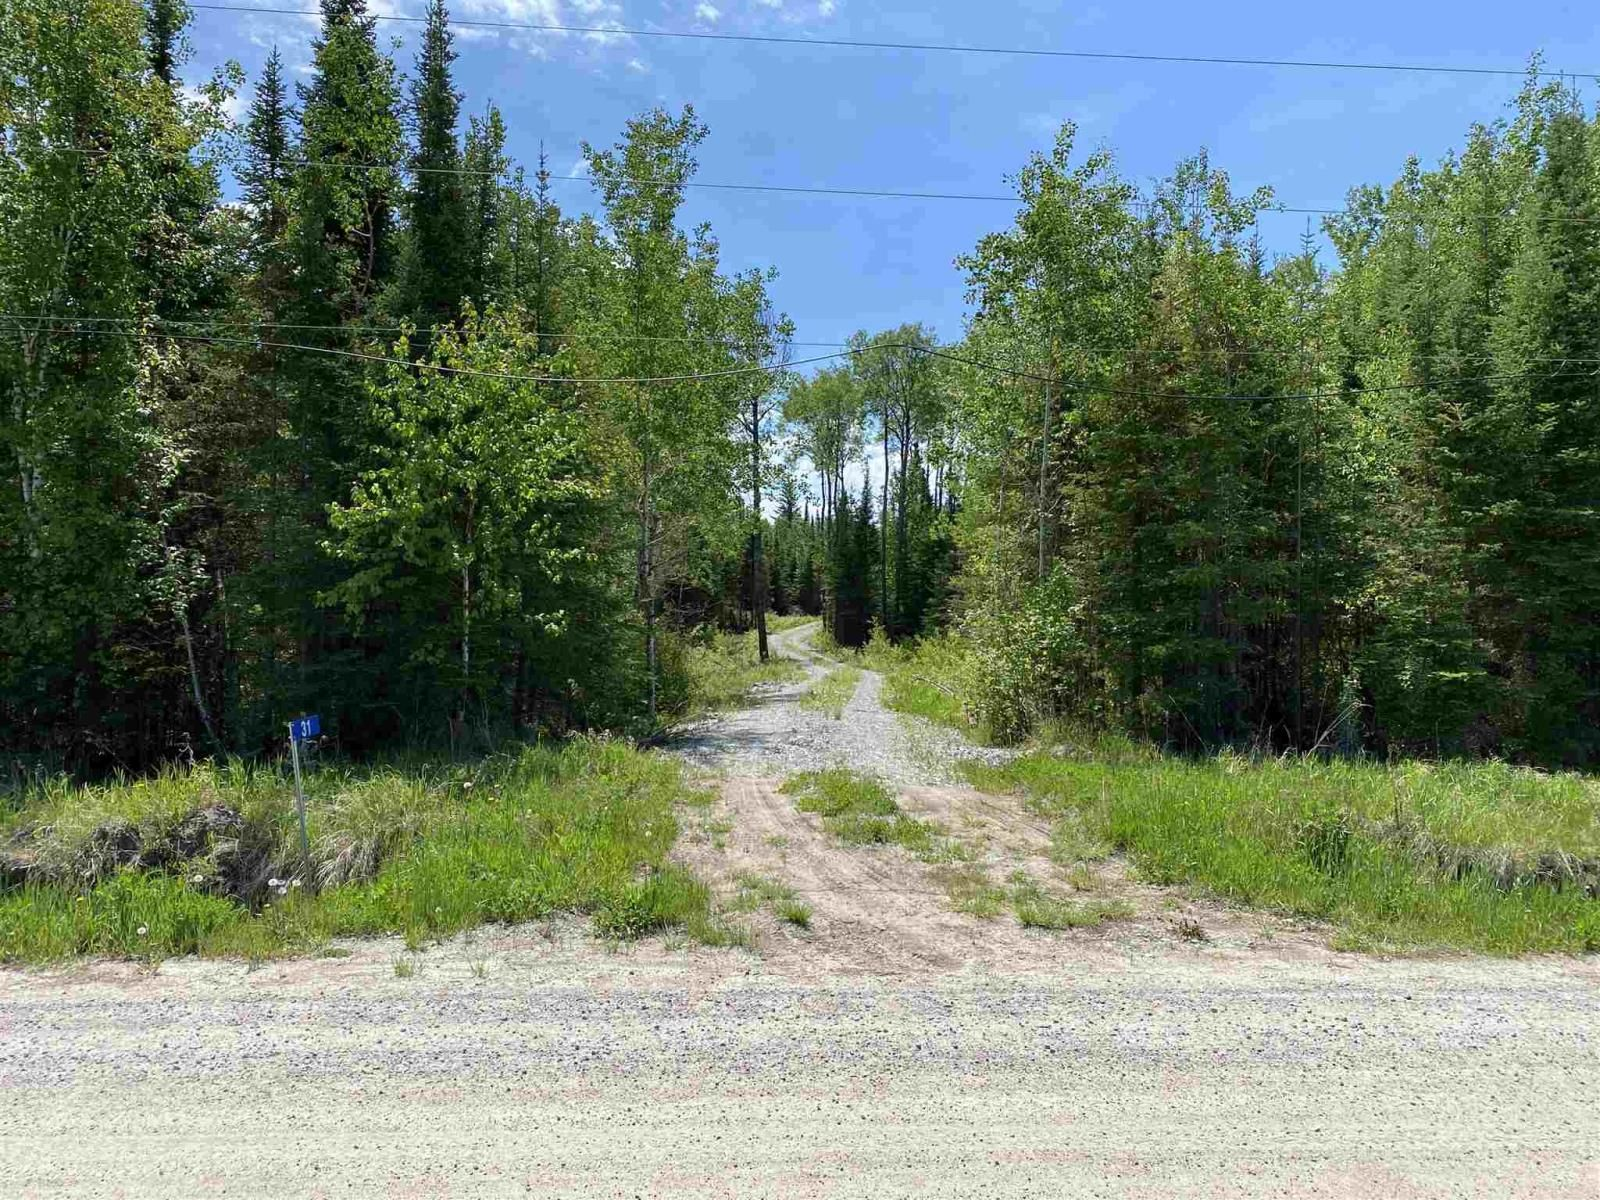 Main Photo: 31 SCHOOL ROAD in KENORA: Vacant Land for sale : MLS®# TB211480